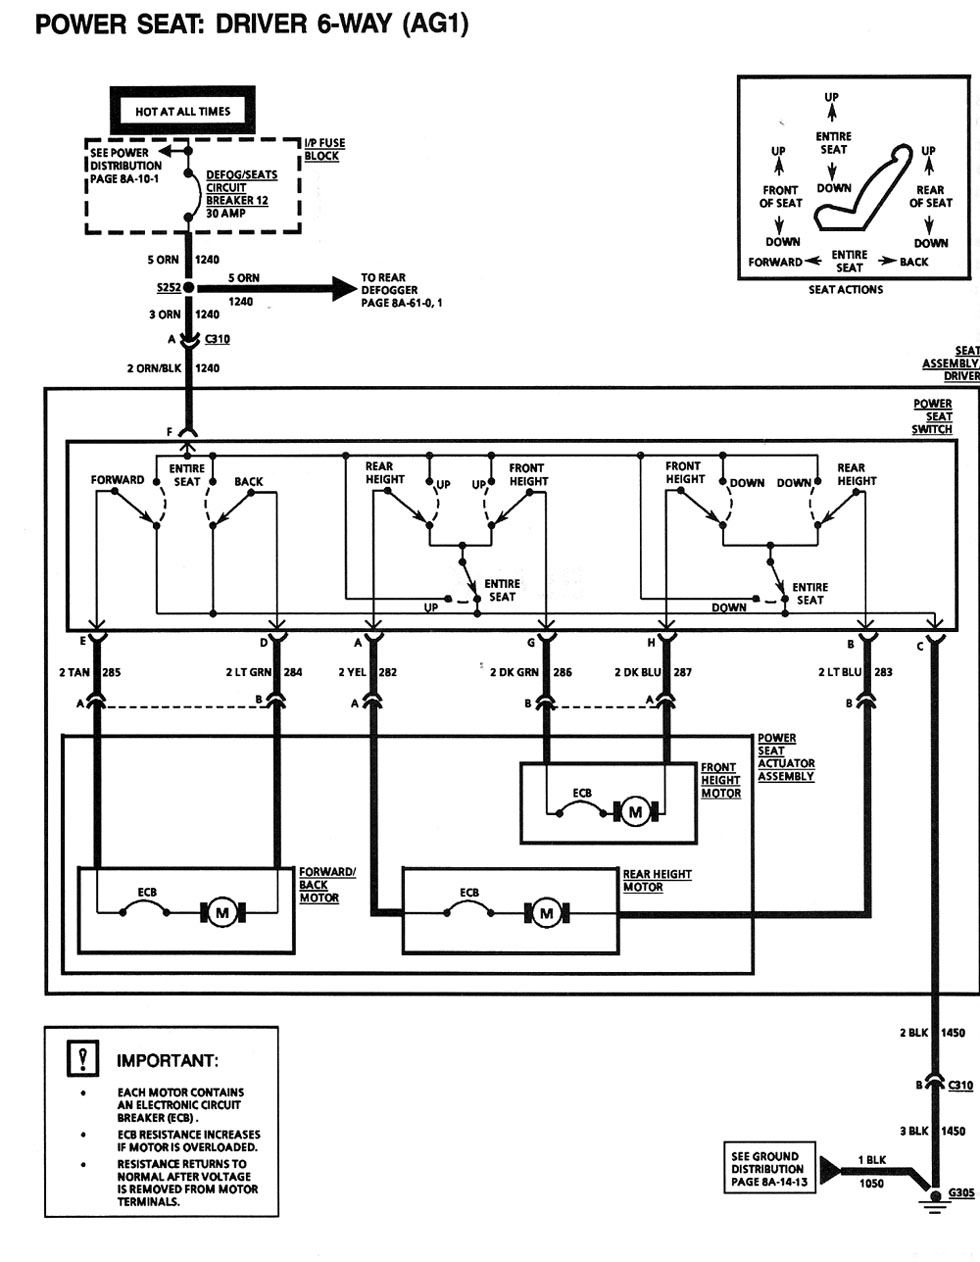 hight resolution of 96 gm radio wiring diagram wiring library96 gm radio wiring diagram